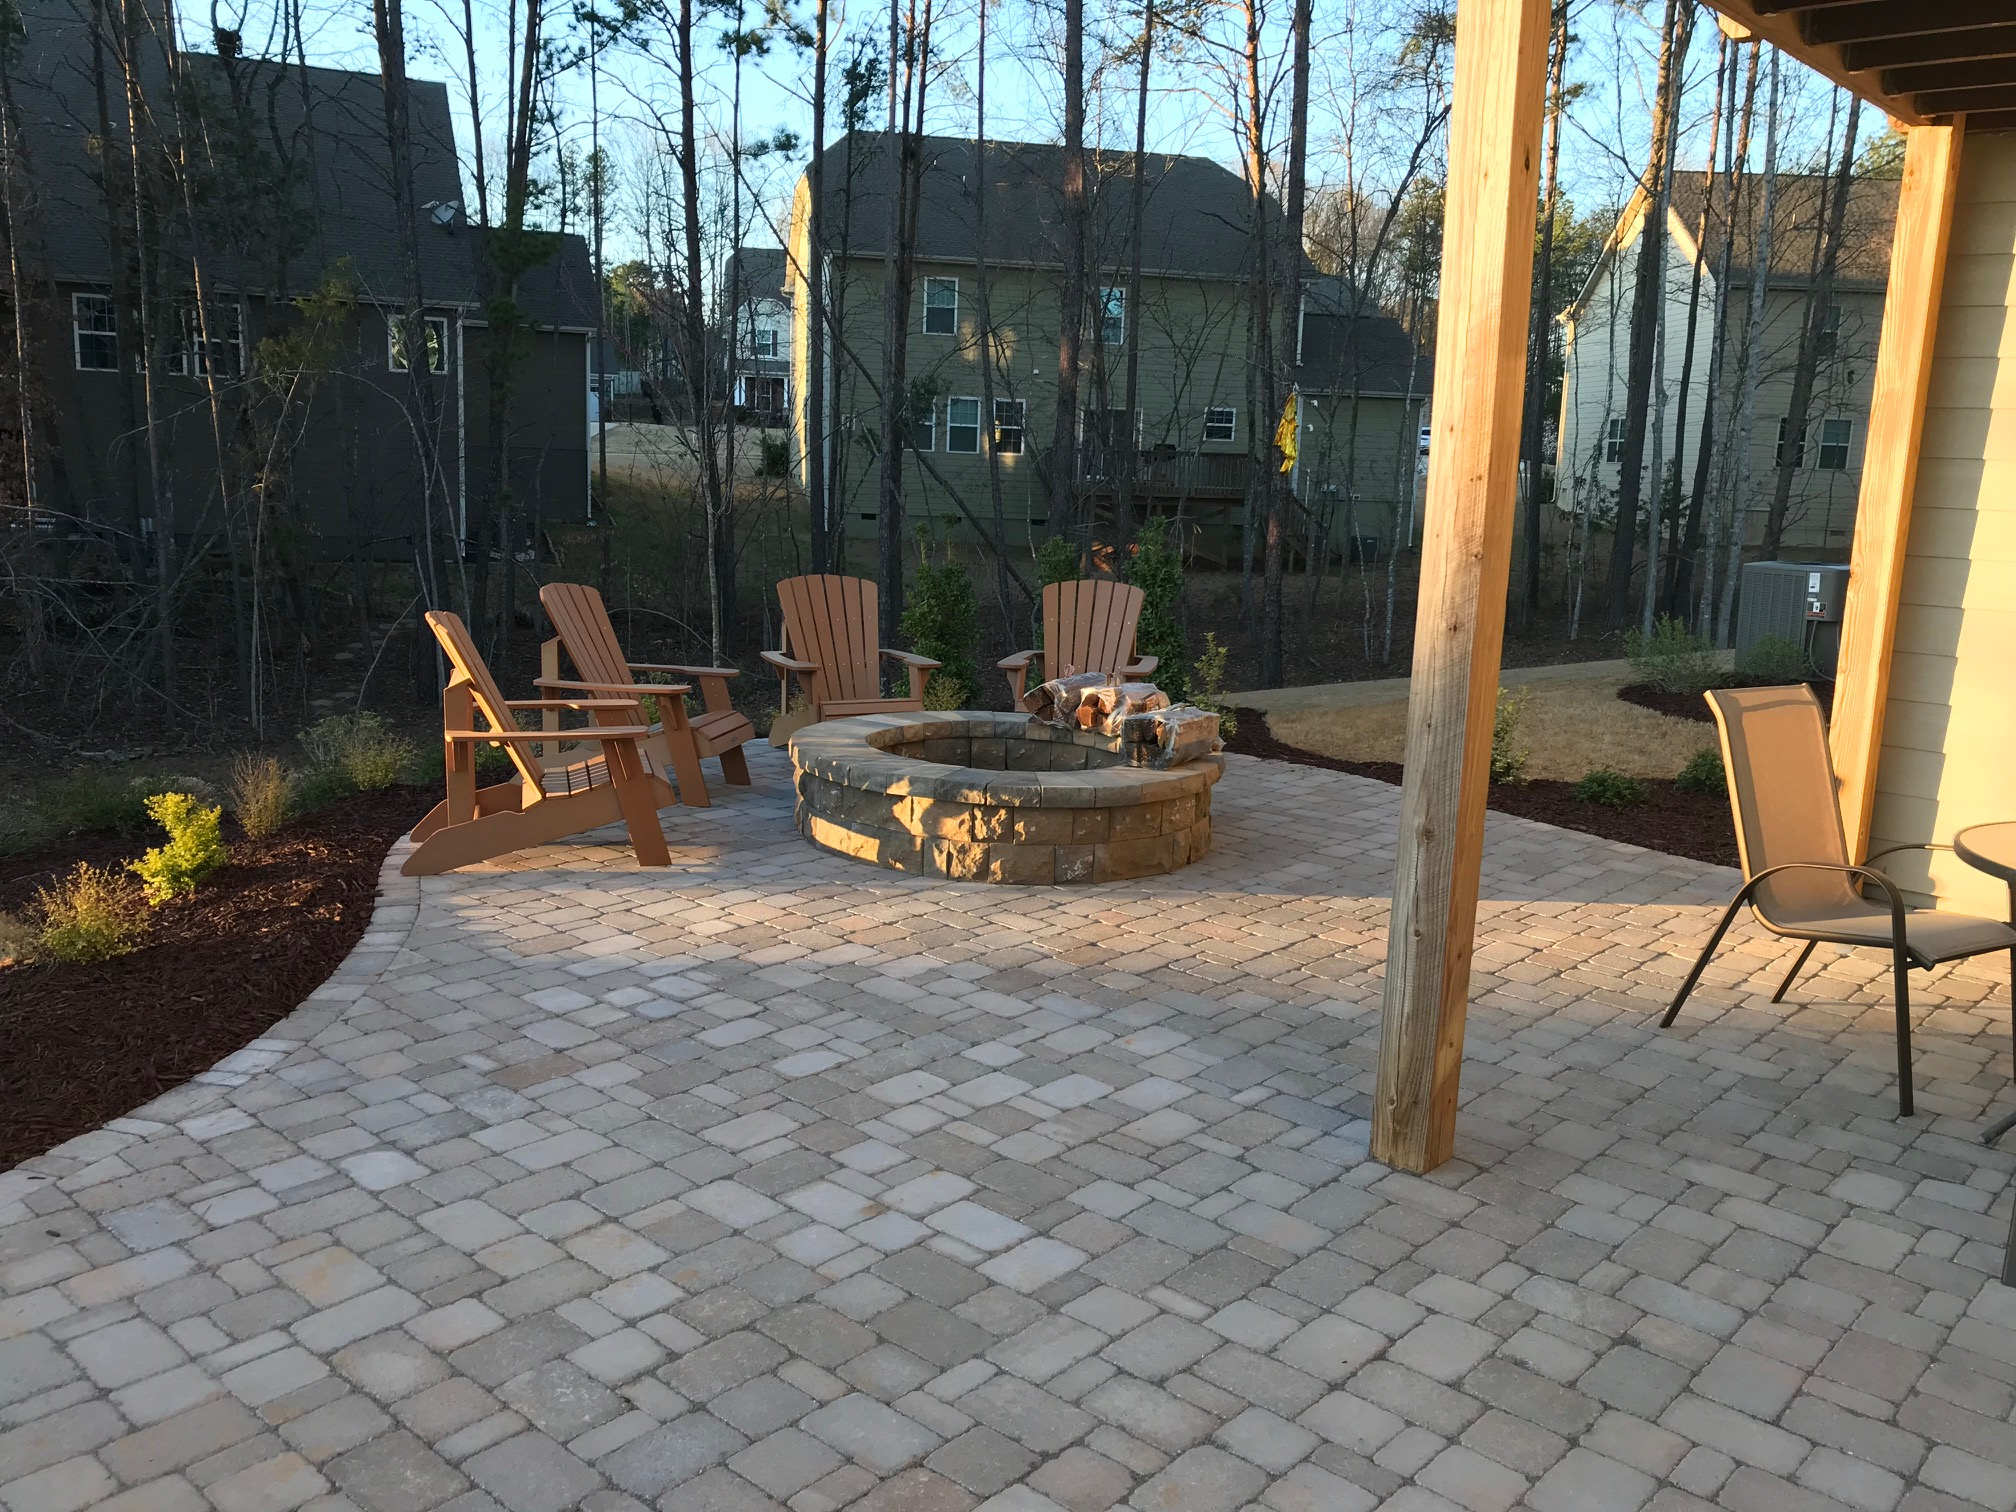 A Belgard Paver Patio Fire Pit and Landscaping  Mr